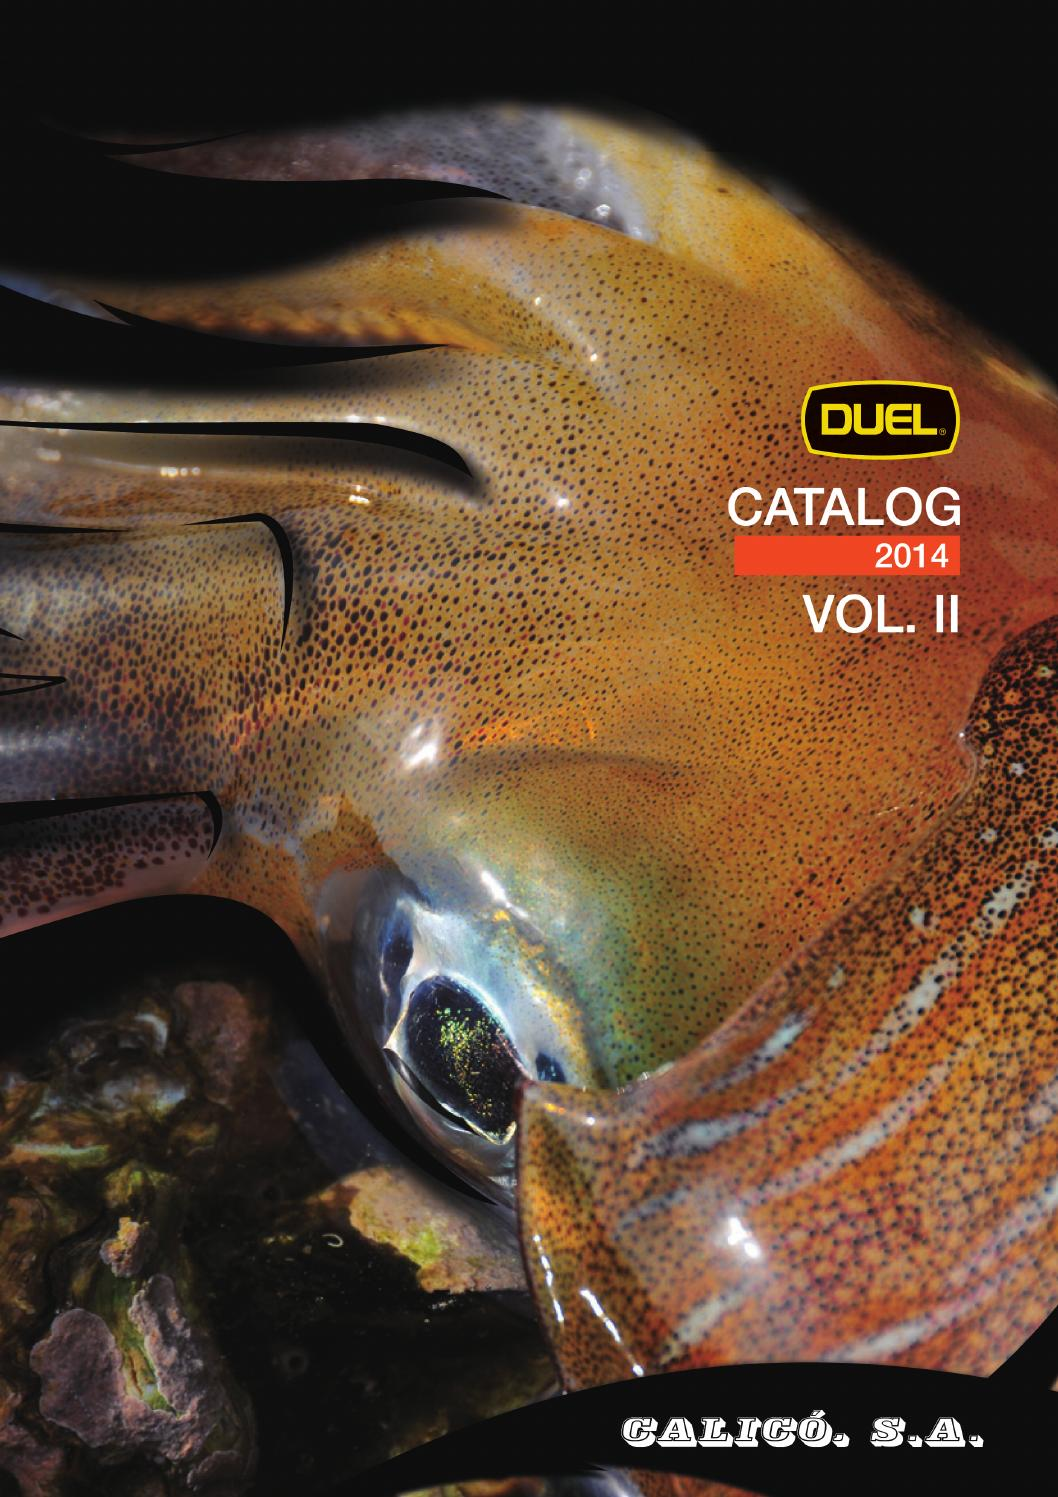 NEW DUEL HARDCORE MINNOW 210mm FLOATING COLOR HCA MADE IN JAPAN